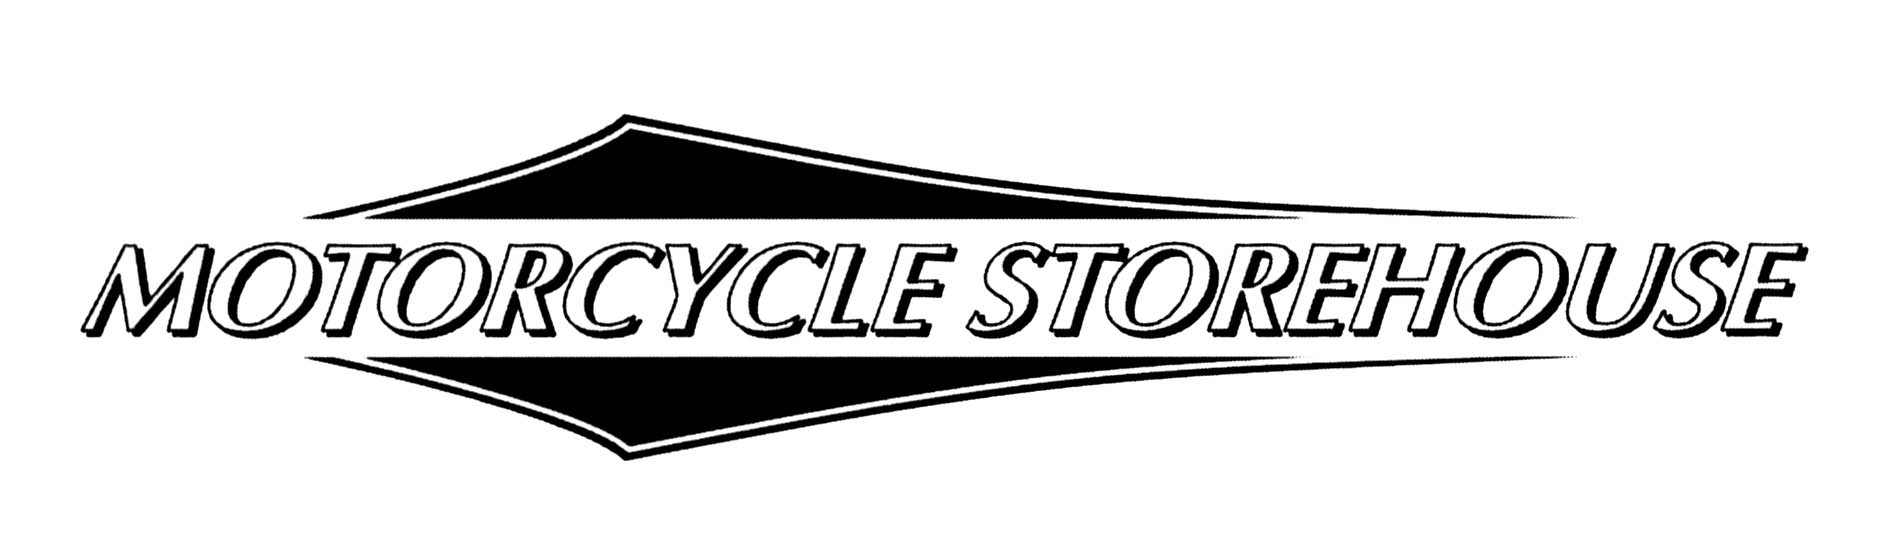 motorcycle-storehouse-nl